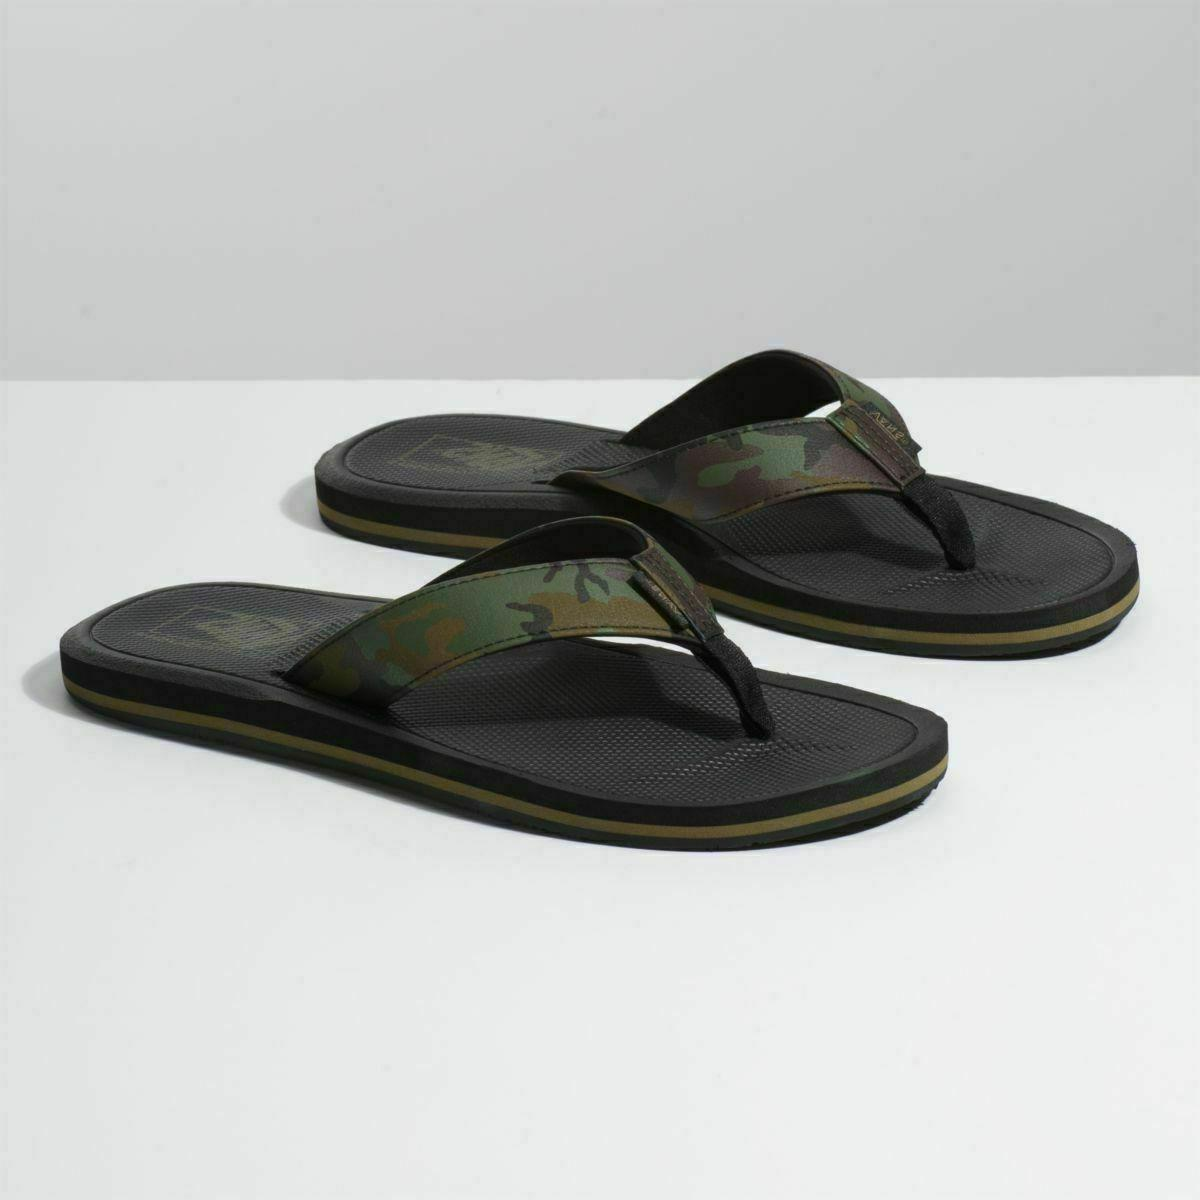 NWT Vans FLIP Sandals BLACK Shoes